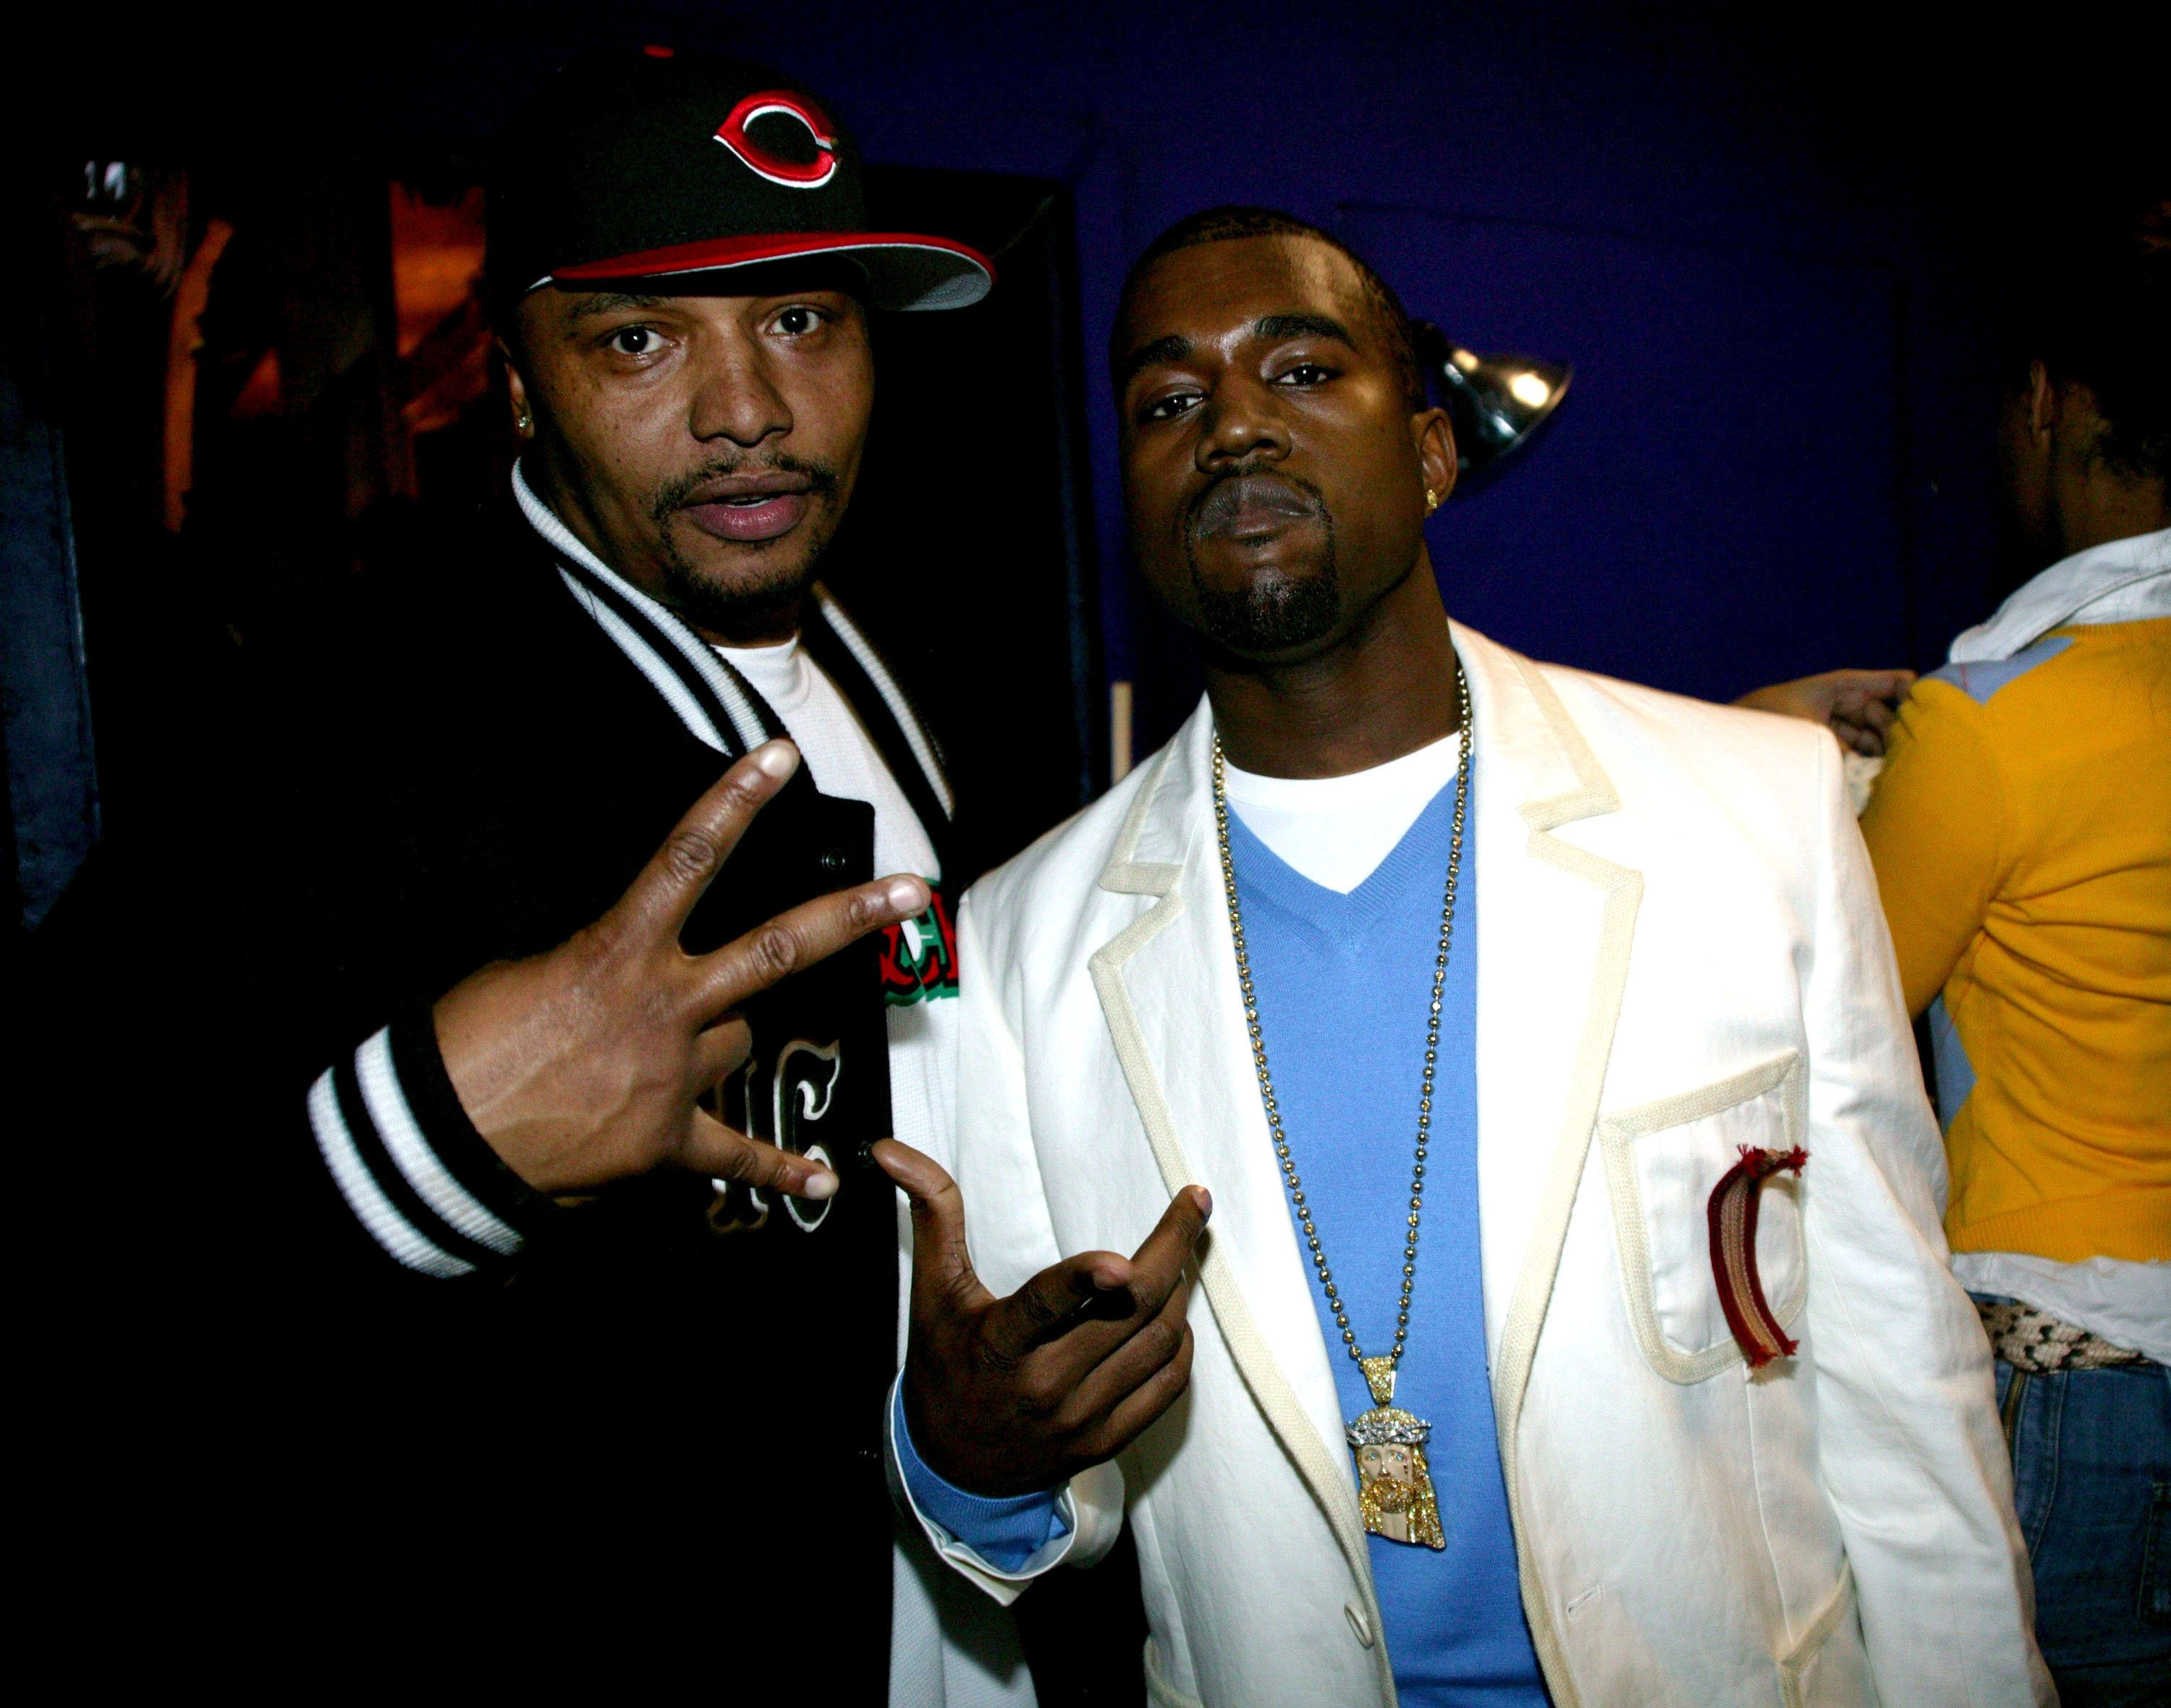 Kanye West's Close Friend Reveals He Suffered Memory